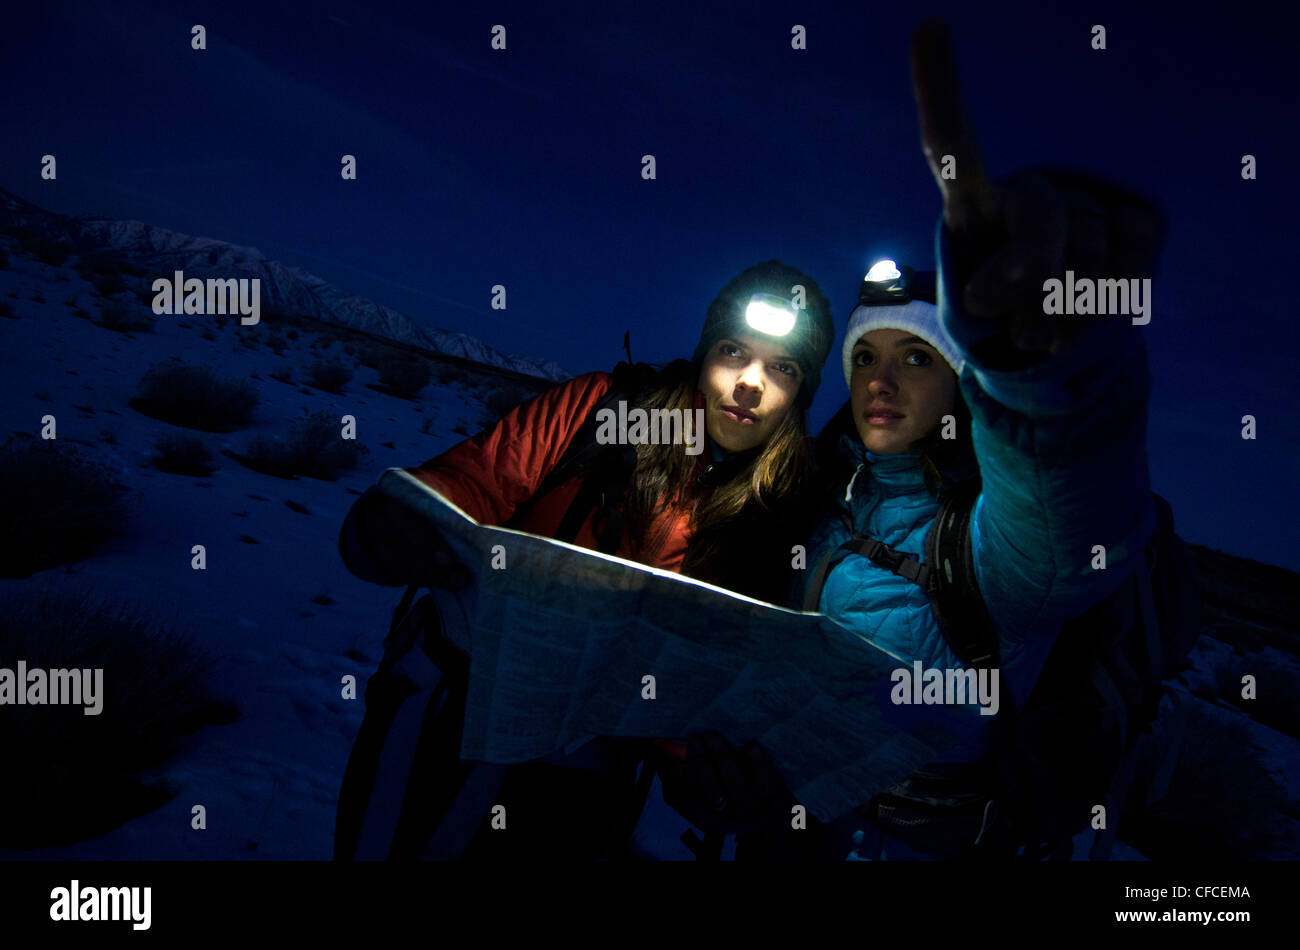 Two women discuss what route to take while hiking in the Sierra Foothills outside of Lake Tahoe, California. Stock Photo